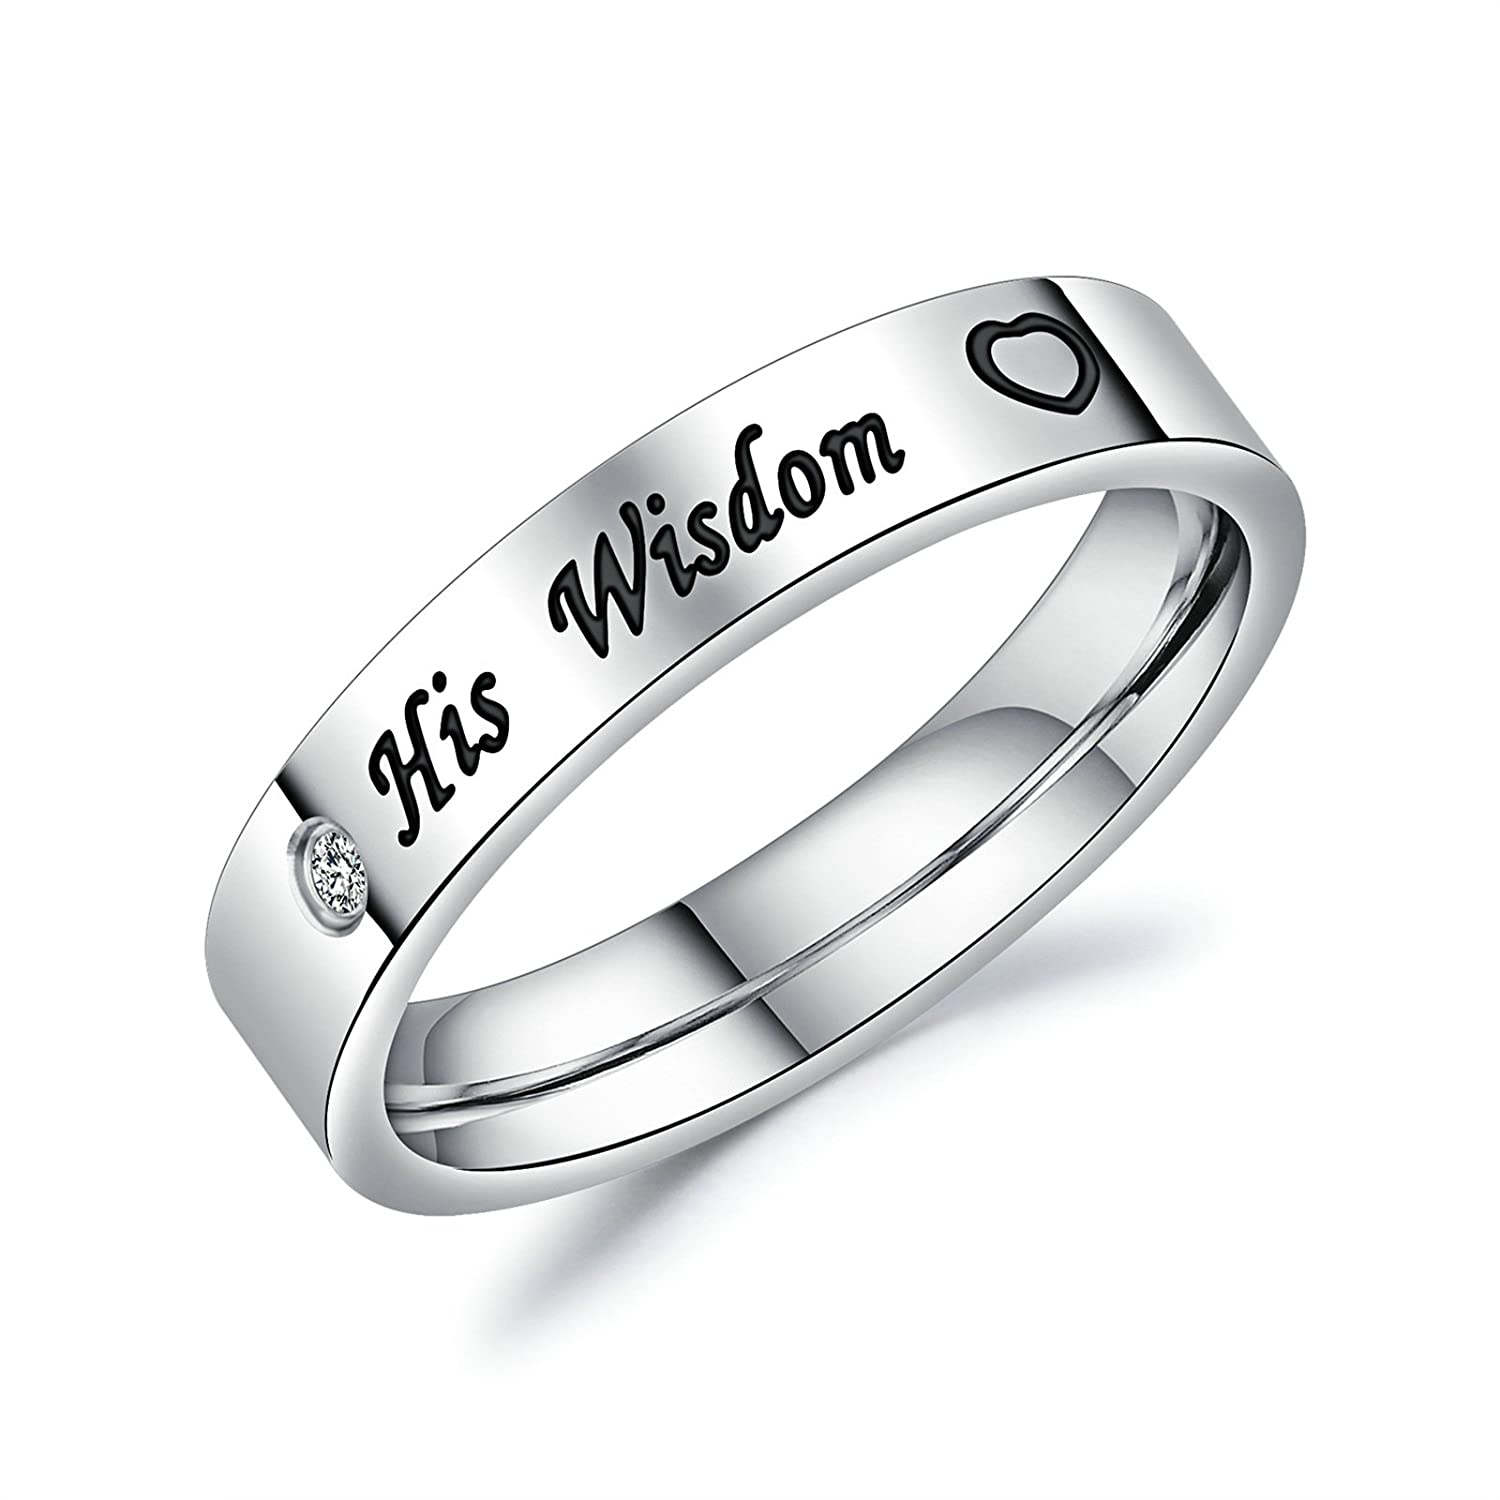 Aooaz In Love Rings Stainless Steel Engagement Rings Friendship Rings Silver Her Beauty Love Heart His Wisdom Love Heart Rings With Free Engraving Novelty Jewelry Gift